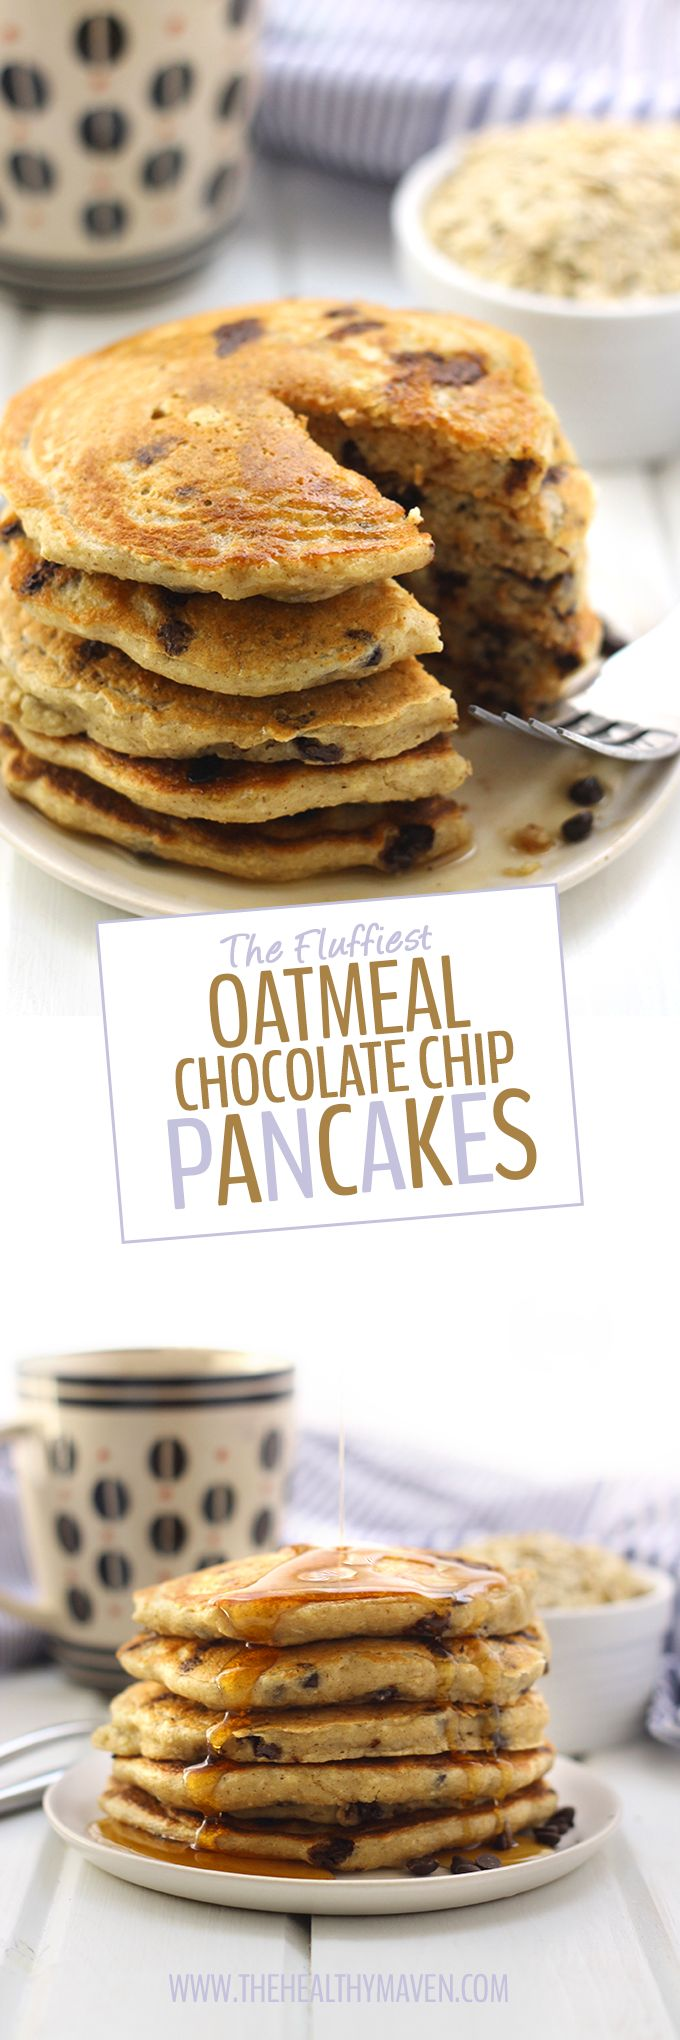 Oatmeal meets pancakes with The Fluffiest Oatmeal Chocolate Chip Pancakes. These pancakes are gluten-free, refined sugar-free and high in protein but are the most delicious, fluffiest pancakes you will ever eat. They will quickly become a weekend brunch recipe staple!